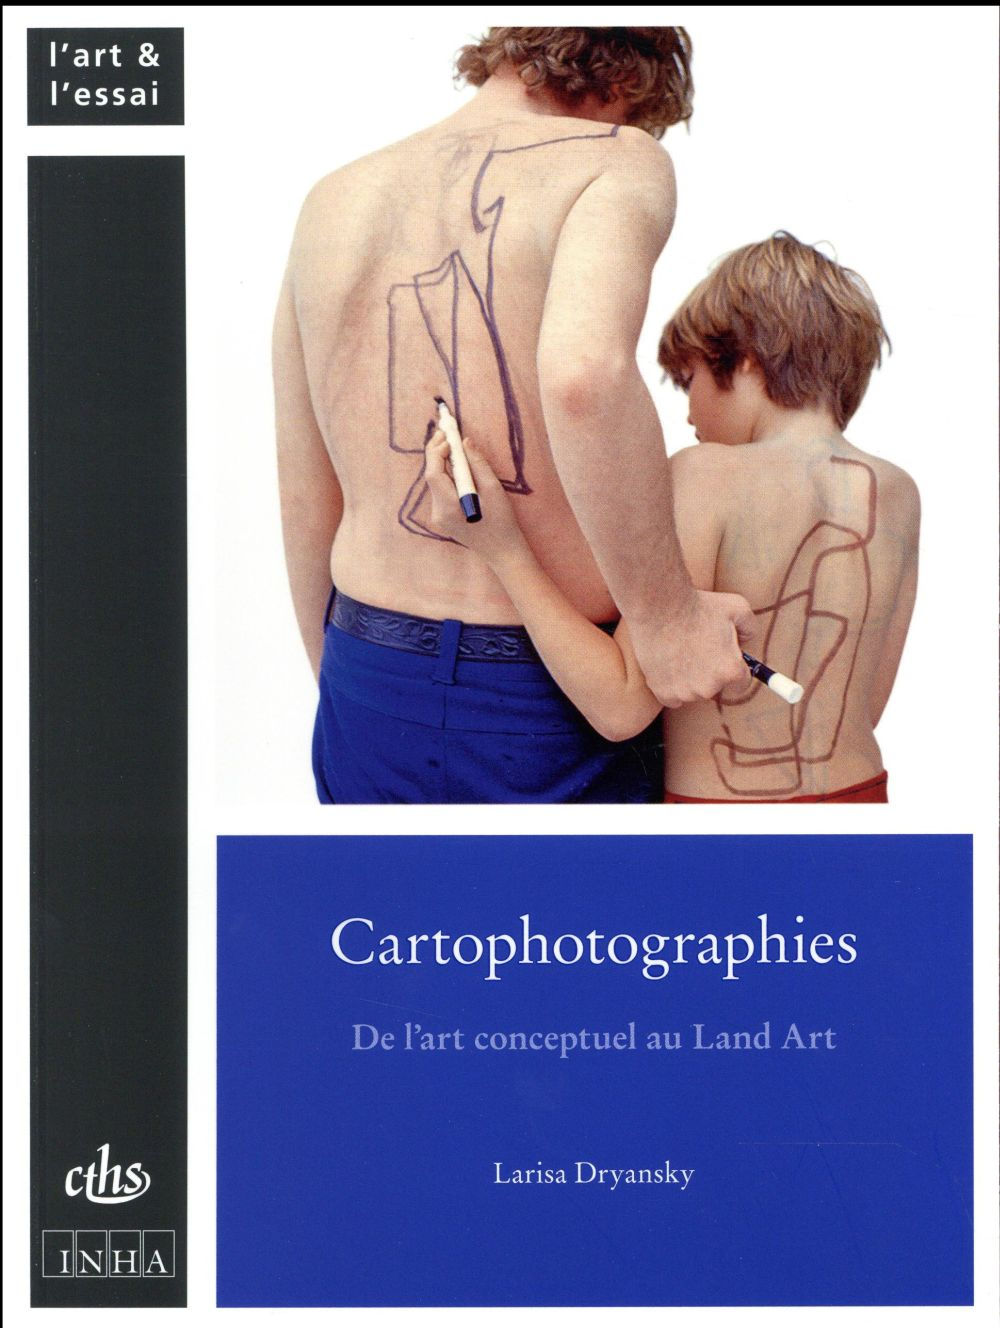 CARTOPHOTOGRAPHIES